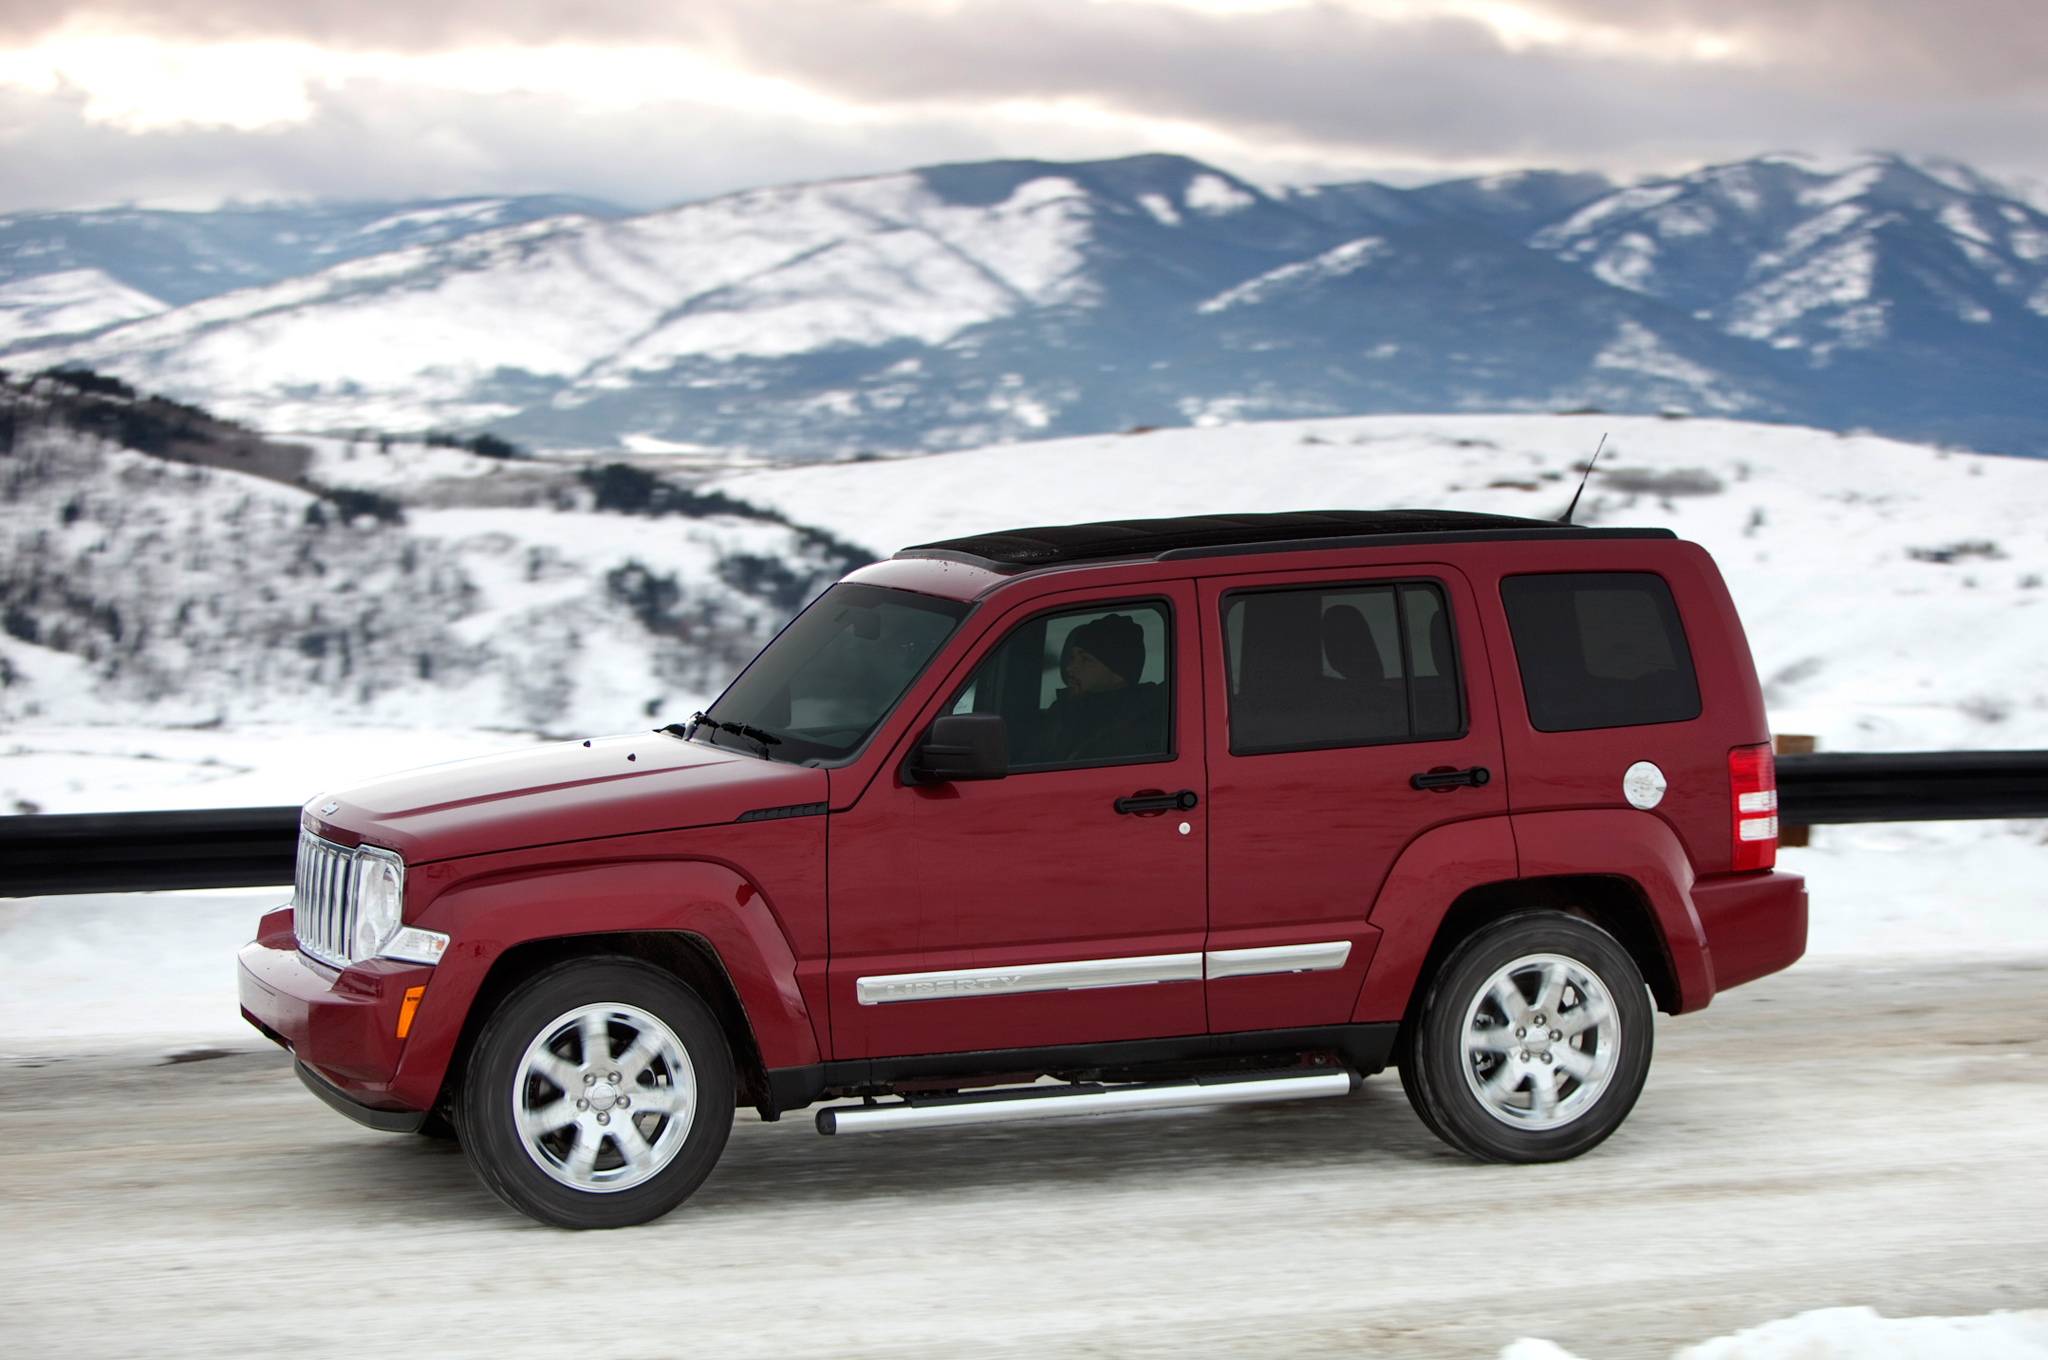 2014 Jeep Liberty ii – pictures information and specs Auto